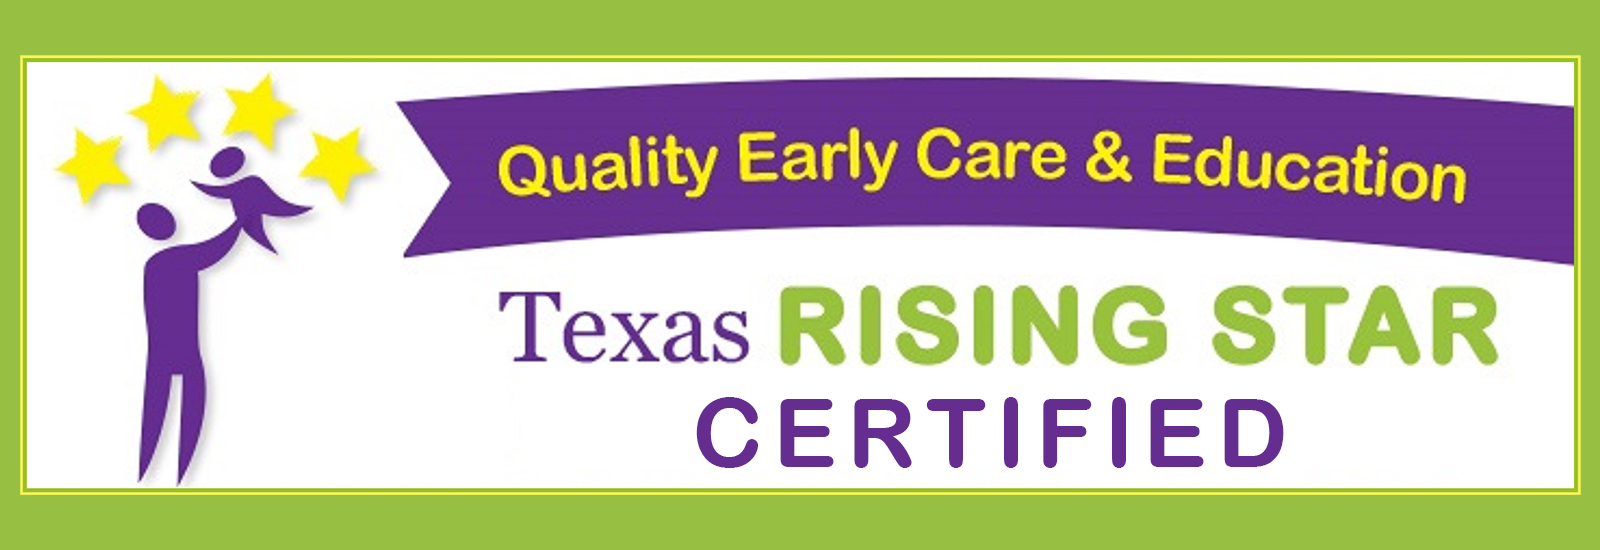 Little Creations Learning Center is Texas Rising Star Certified